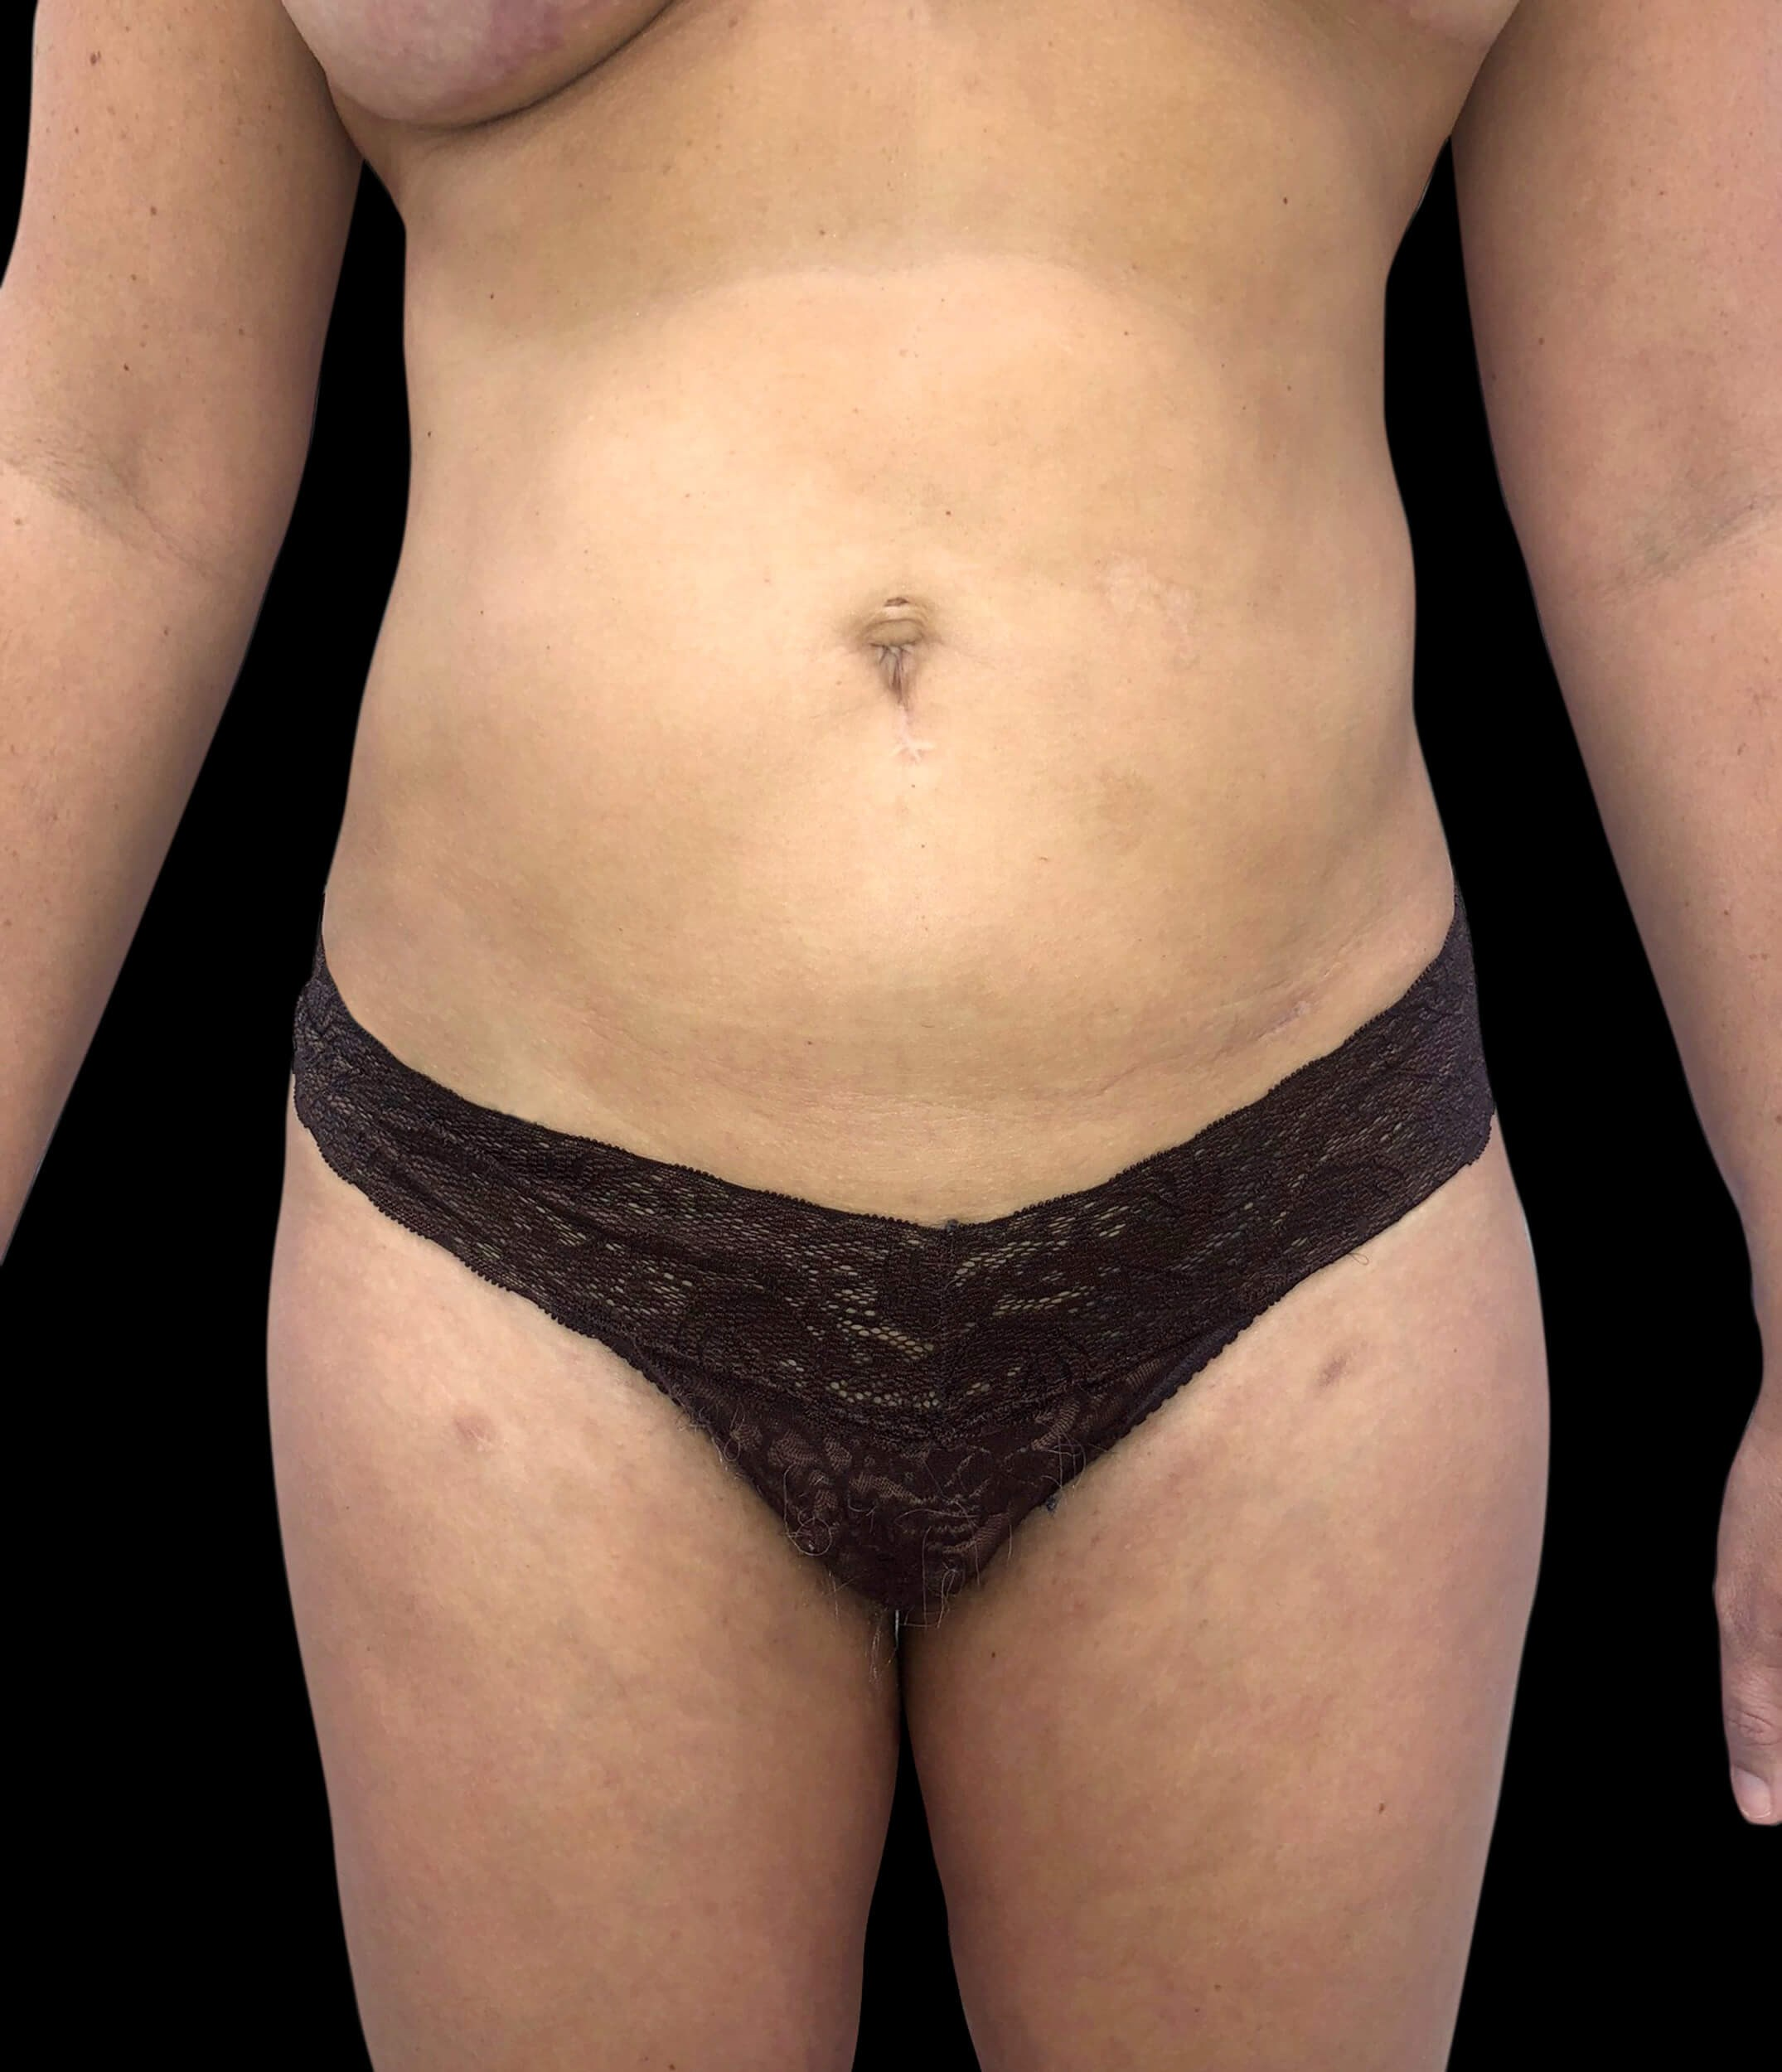 Liposuction & Skin Tightening After